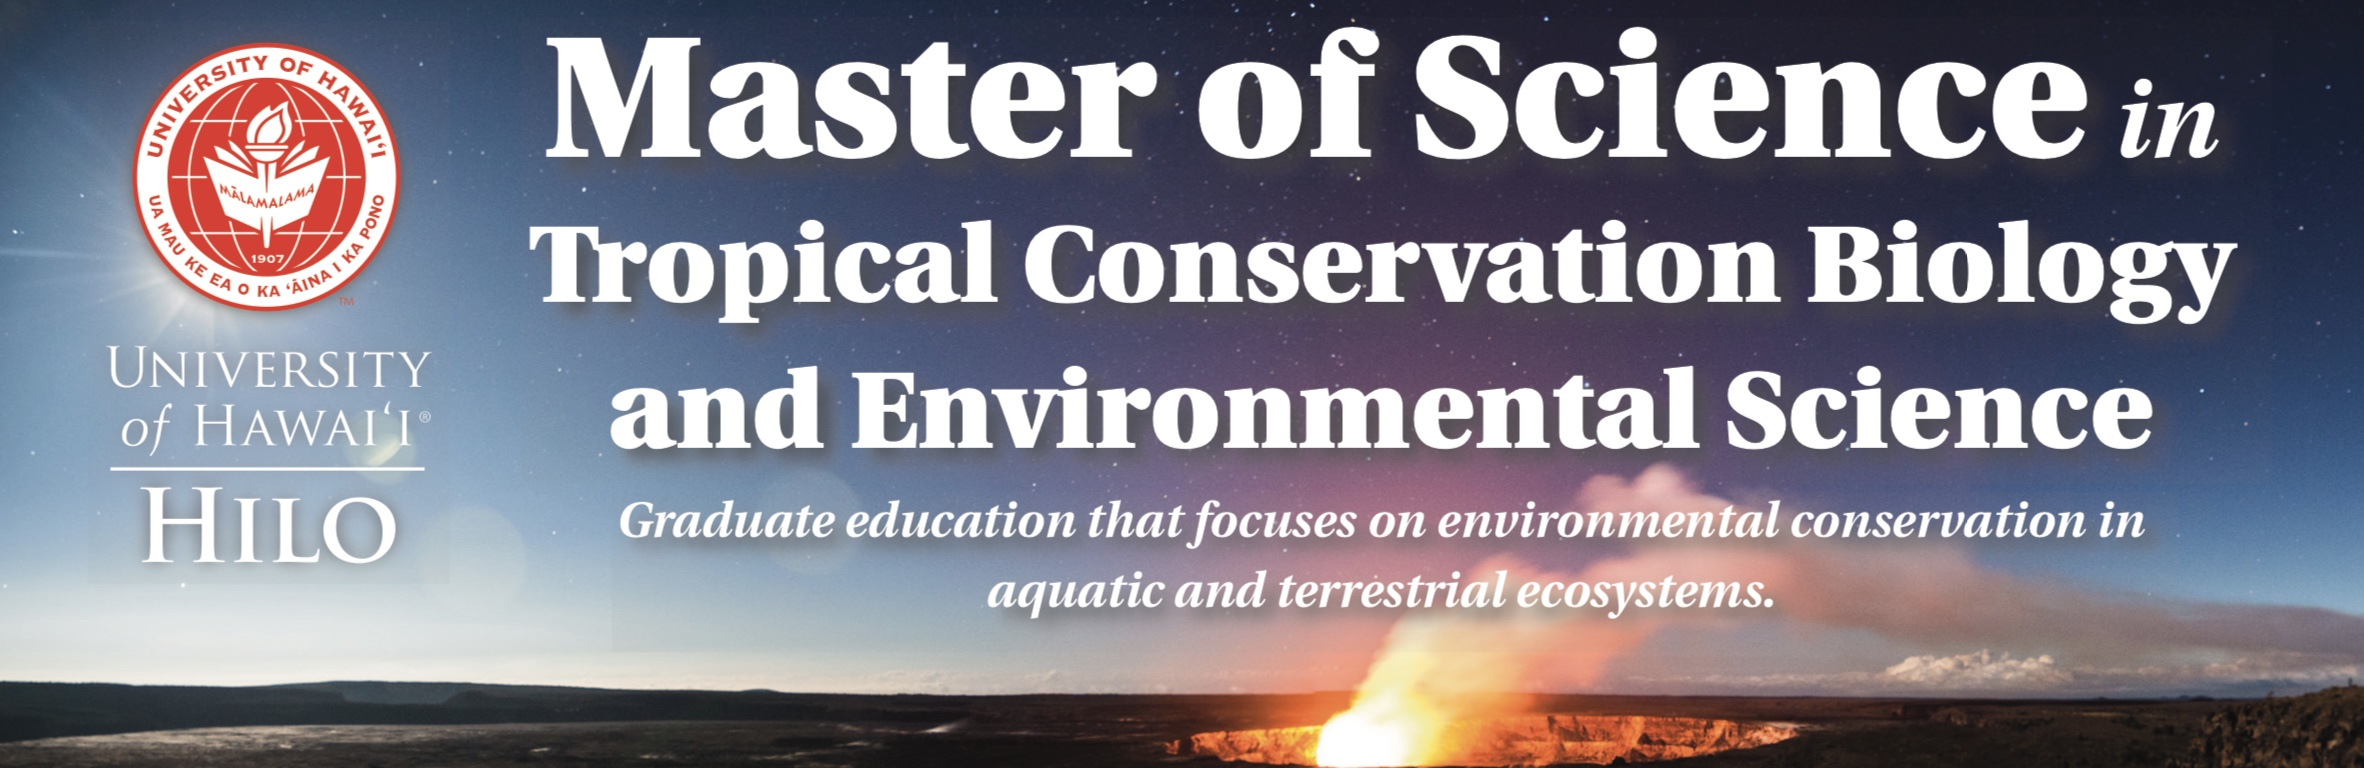 Master of Science in Tropical Conservation Biology and Environmental Science: Available Tracks. Graduate education that focuses on environmental conservation in aquatic and terrestrial ecosystems